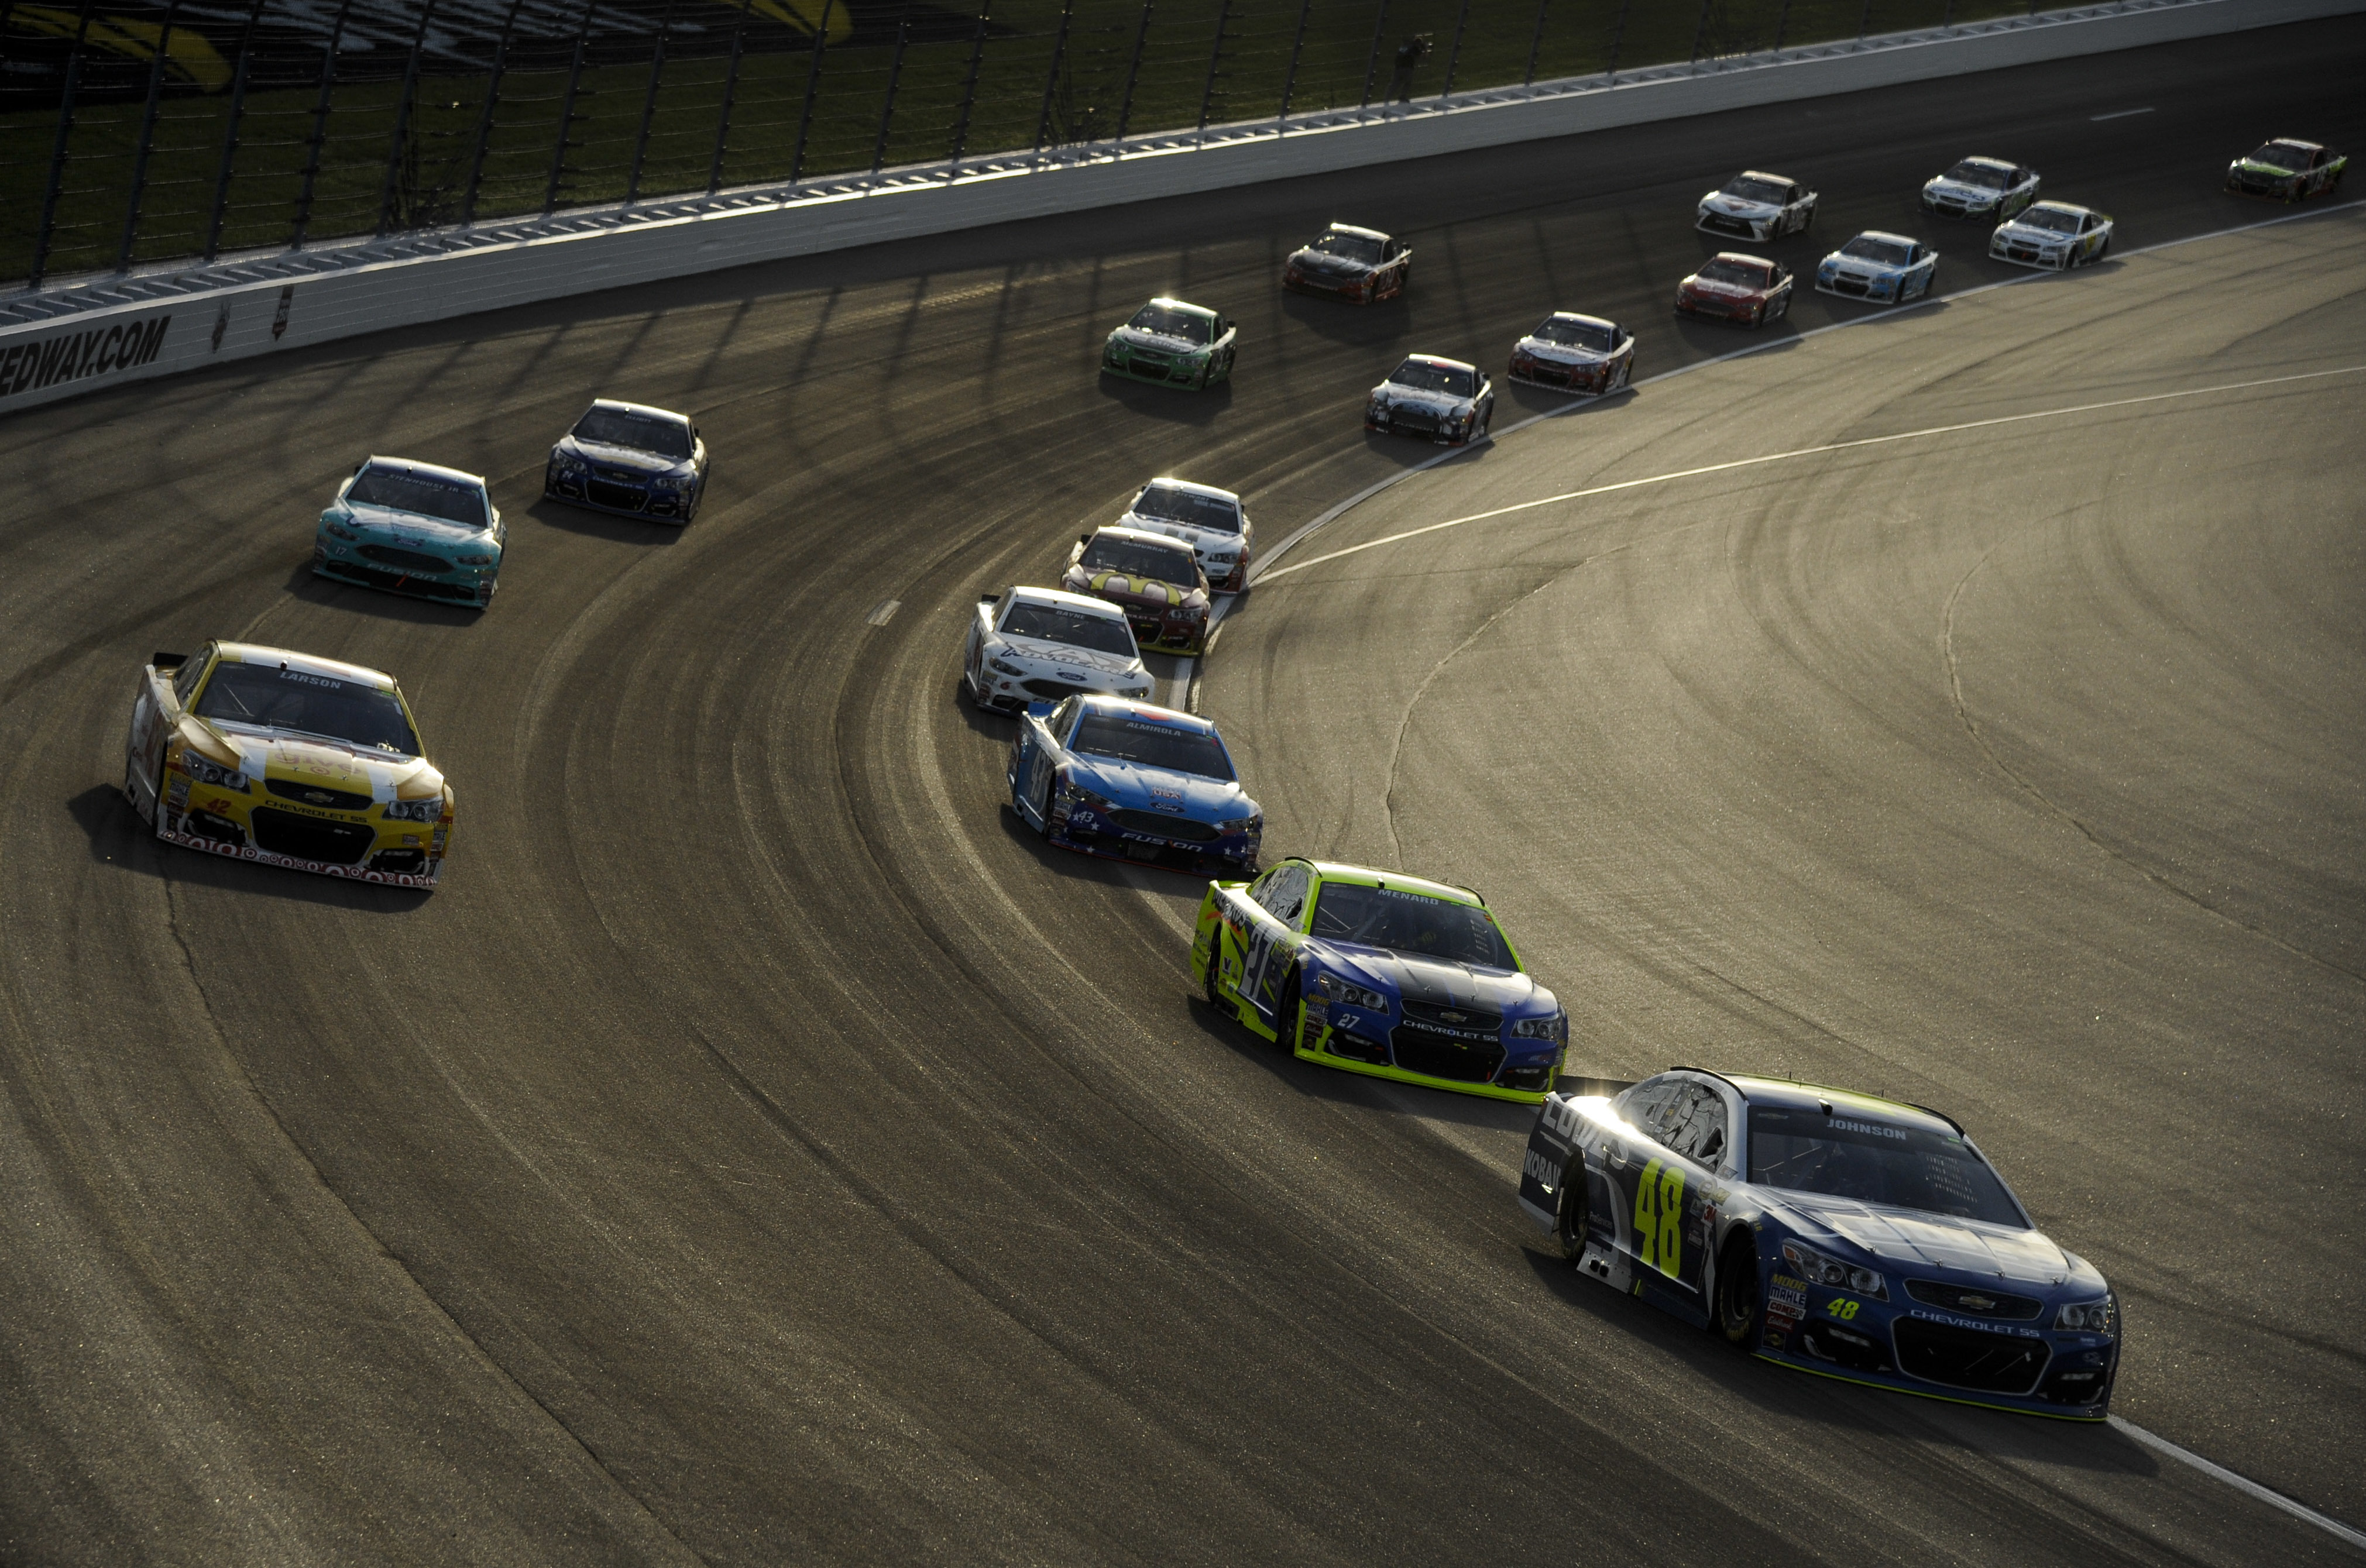 Jimmie Johnson (48) leads a group into the first corner during a NASCAR Sprint Cup Series auto race at Kansas Speedway in Kansas City, Kan., Saturday, May 7, 2016. (AP Photo/Reed Hoffmann)